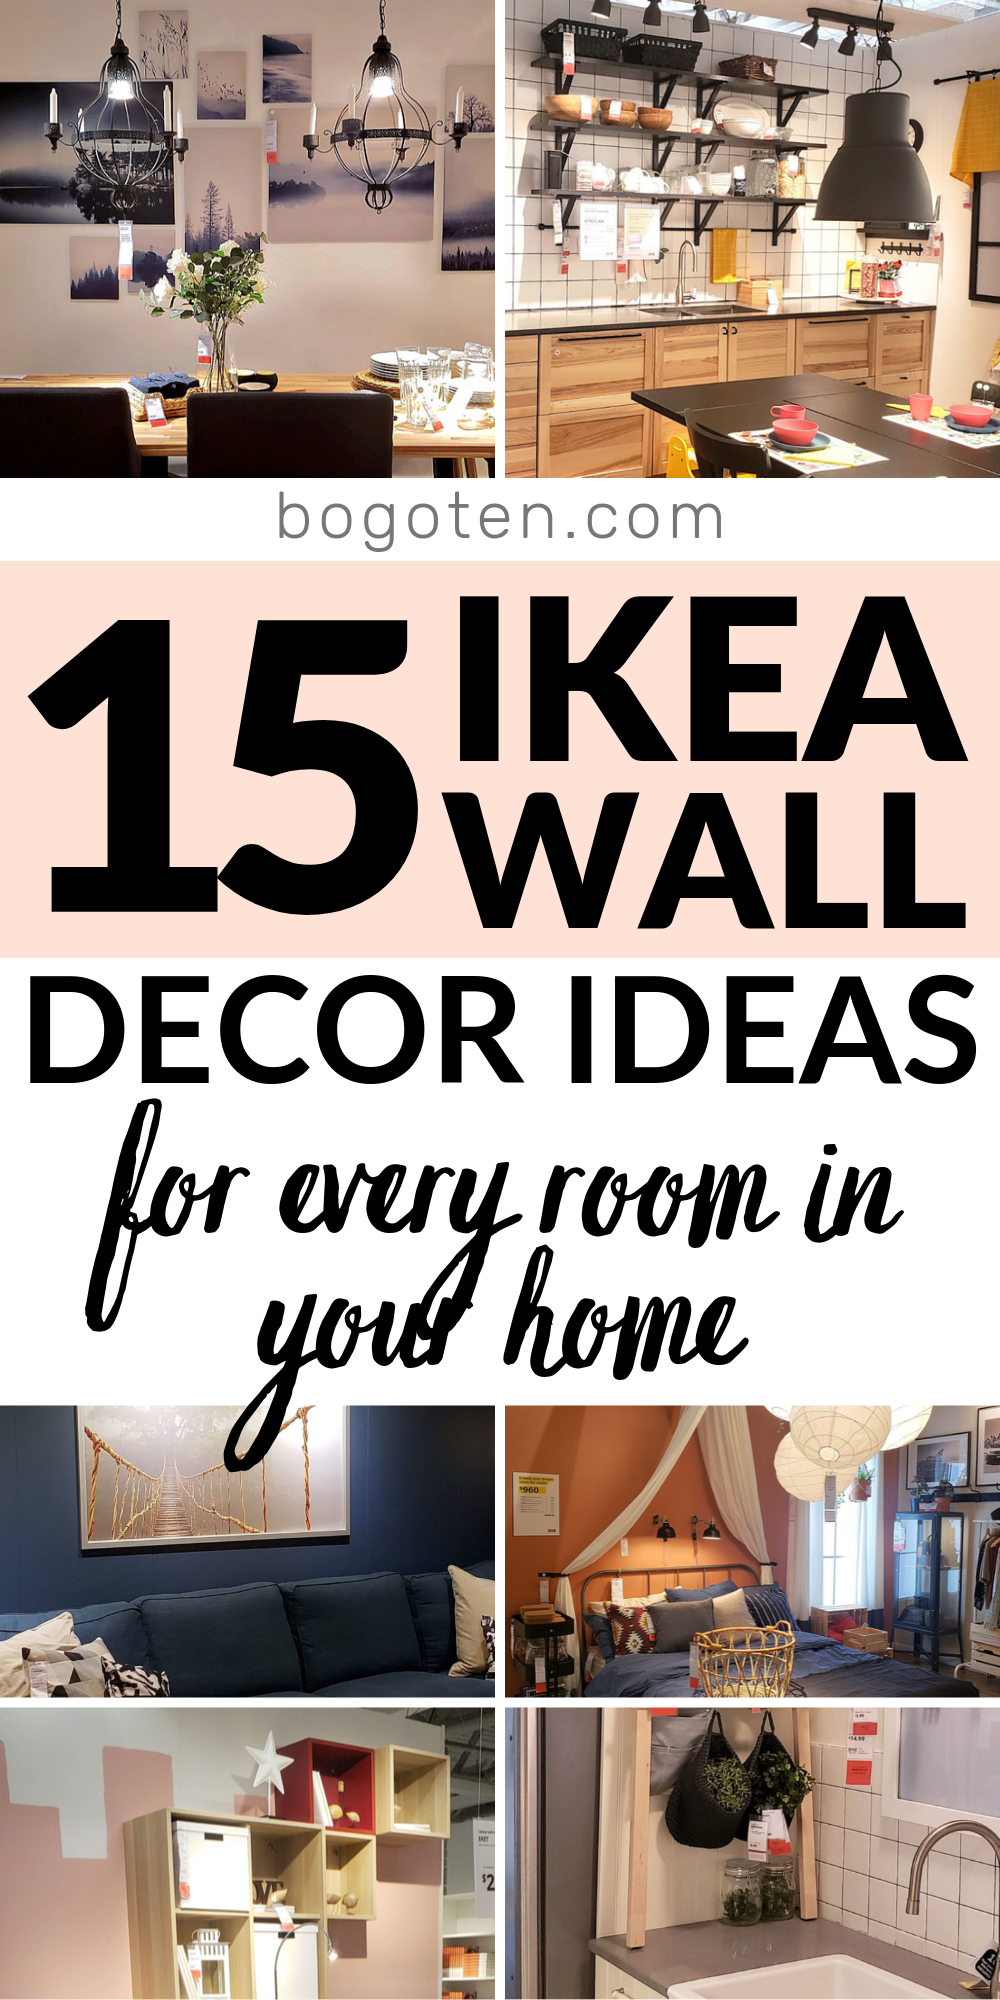 Deck The Walls With Ikea Wall Decor Ideas & Hacks | Ikea Wall Decor, Ikea Wall, Ikea Wall Art